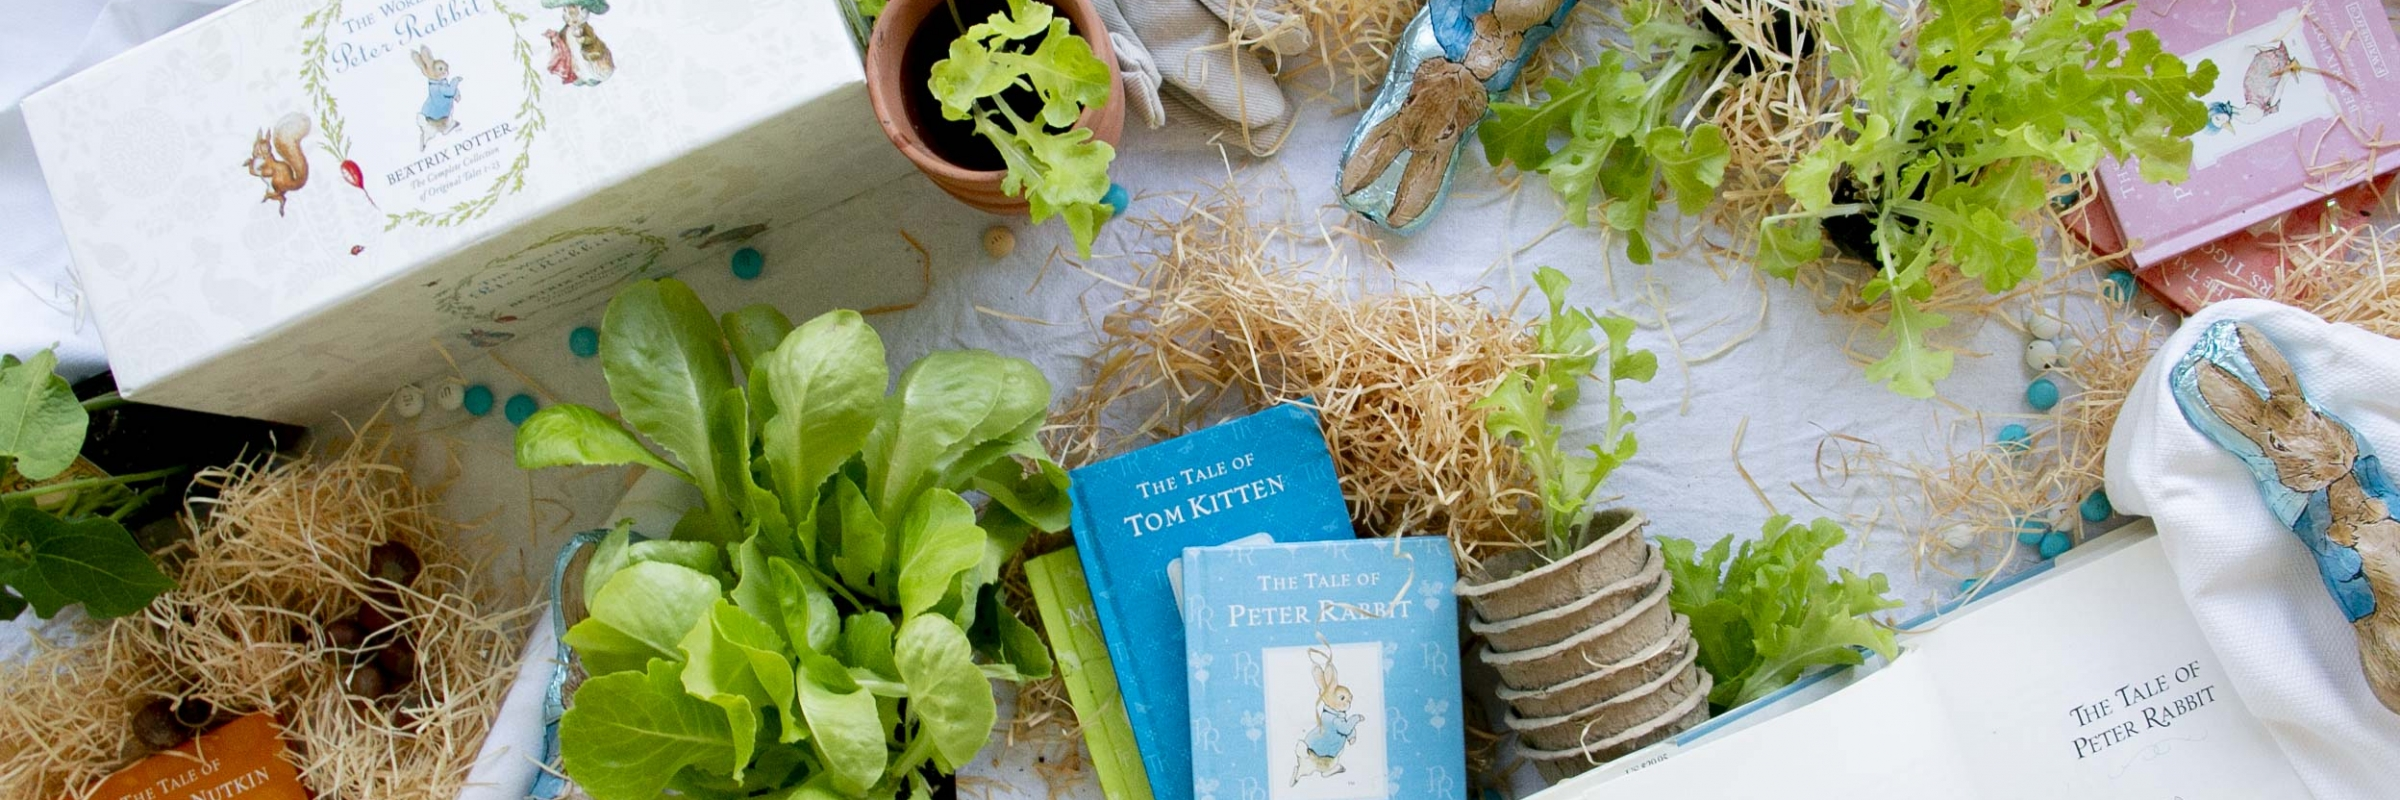 Peter Rabbit feature image